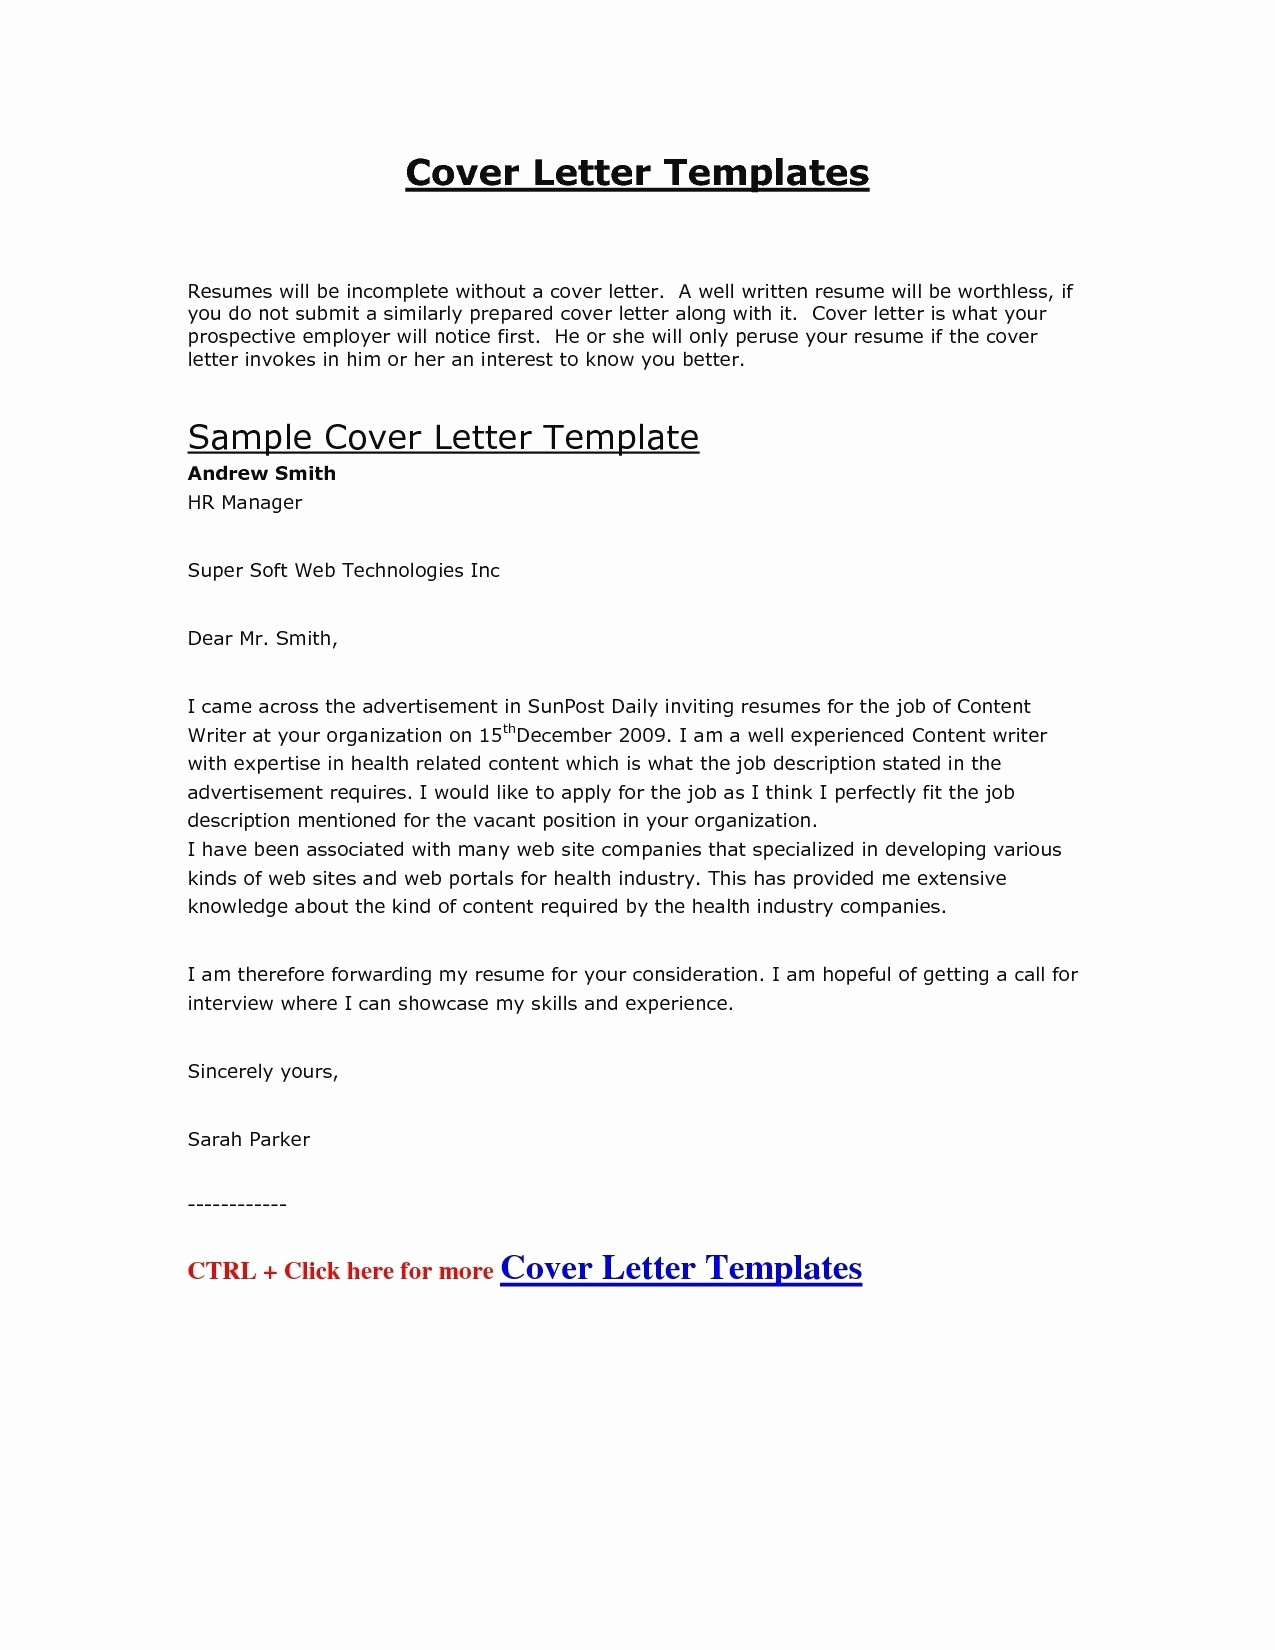 Free Template Cover Letter for Job Application - A Good Cover Letter Examples Cover Letter Sample Free and Resume